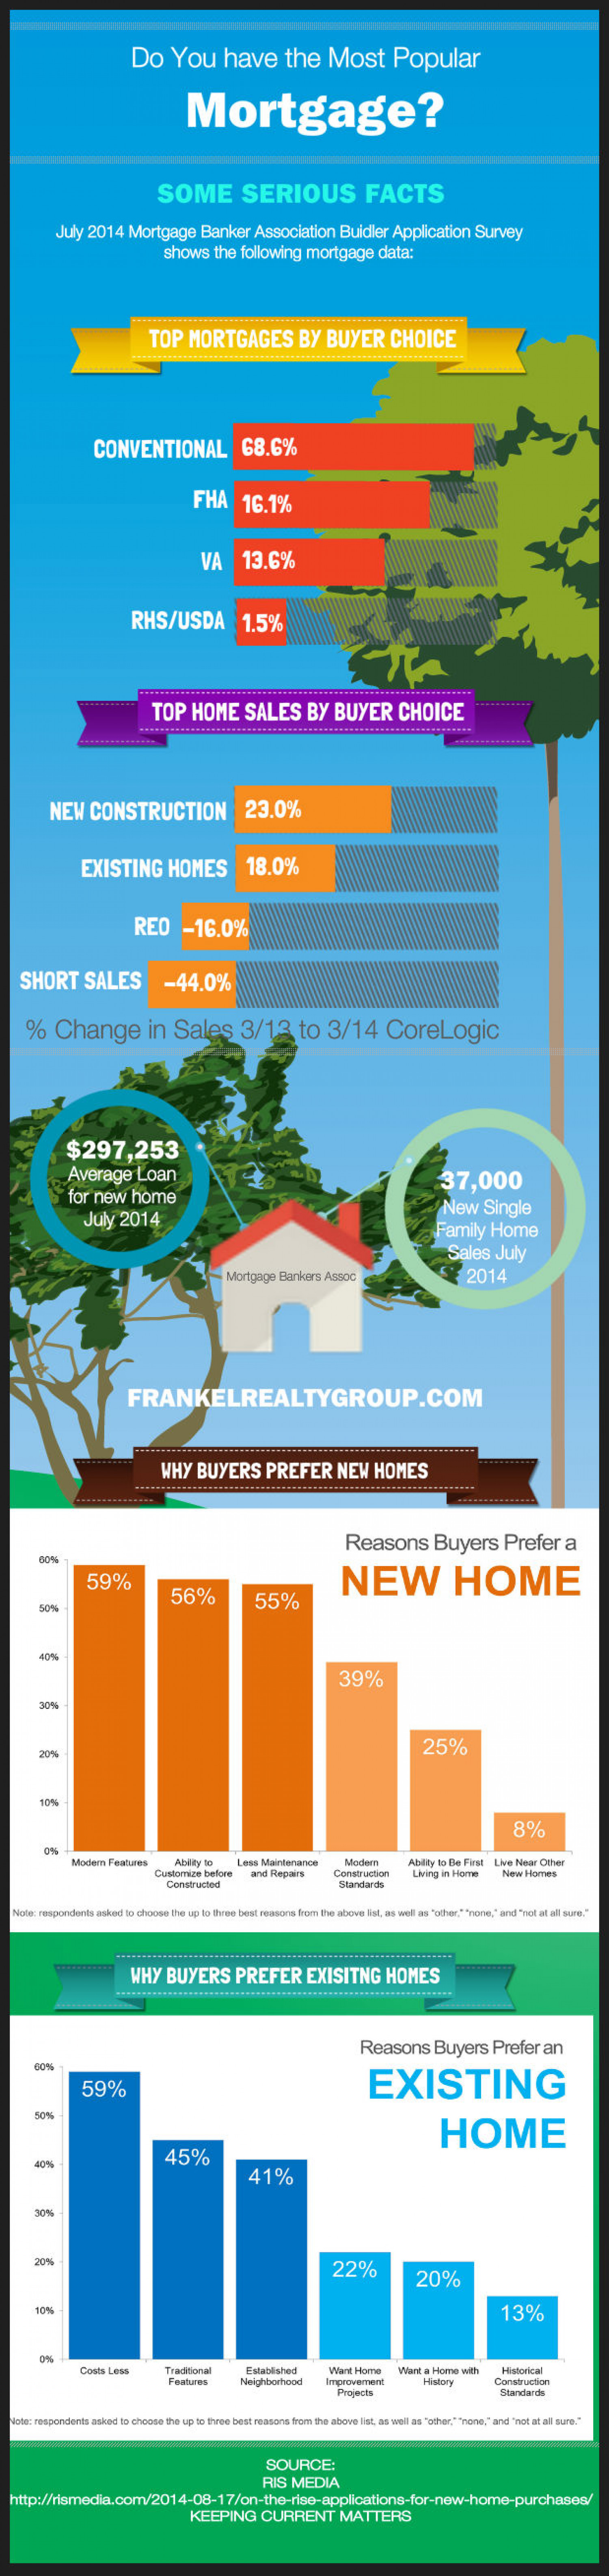 Do You Have the Most Popular Mortgage? Have You Bought the Most Popular House? Infographic